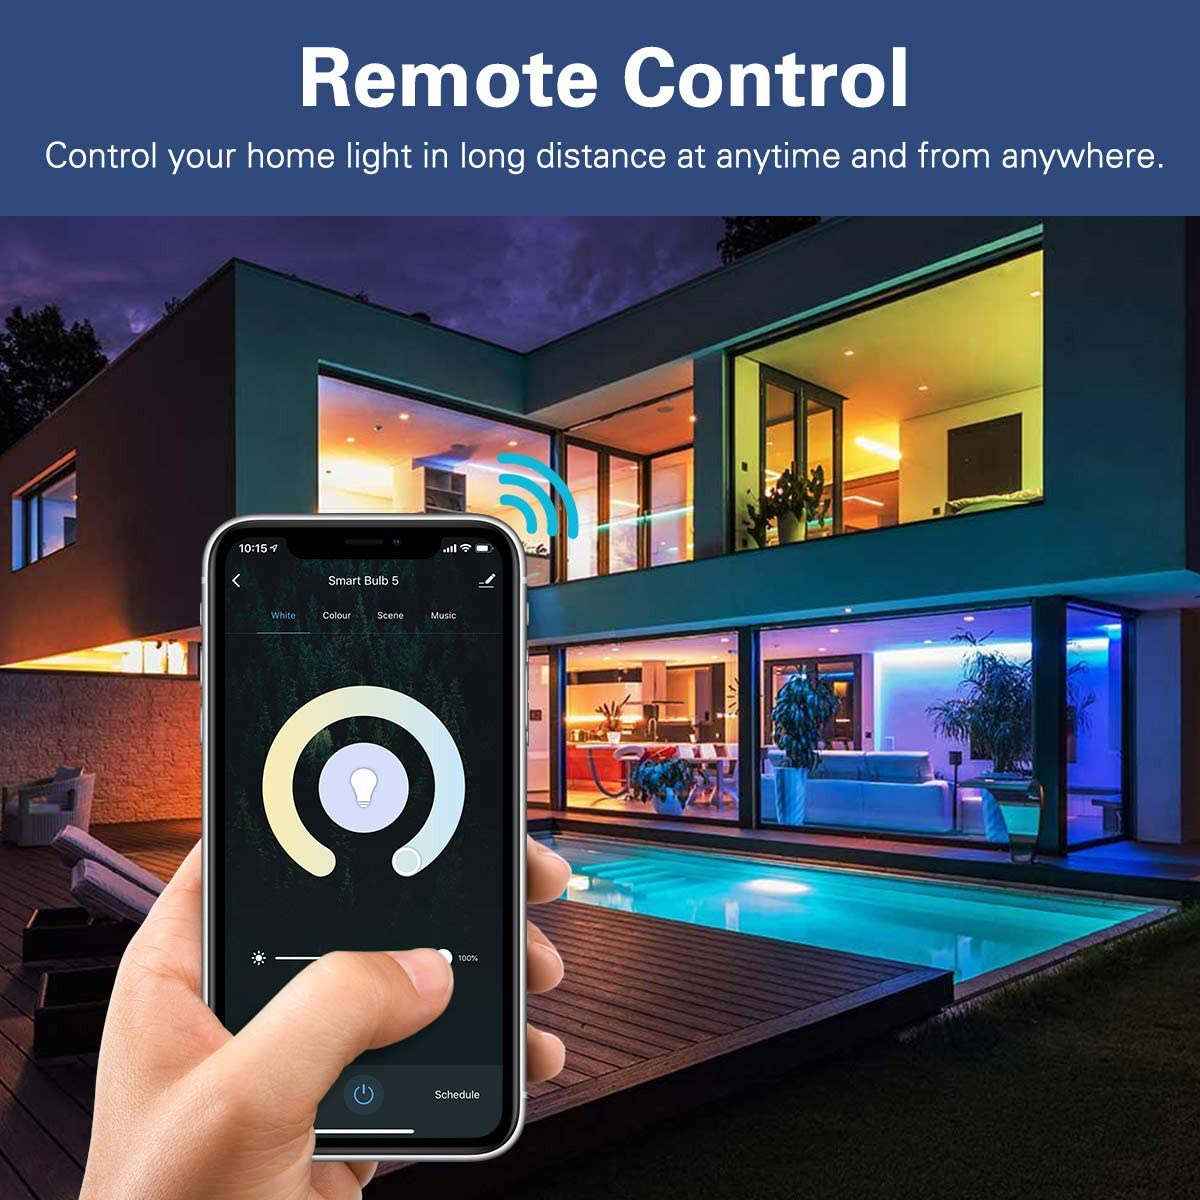 Voice//APP Control Work with Alexa Echo//Google Home//SmartThings RGB Warm White Dimmable Candle Bulb 5W E12 Candelabra Base MoKo Smart LED Light Bulb No Hub,Only Supports 2.4GHz Network